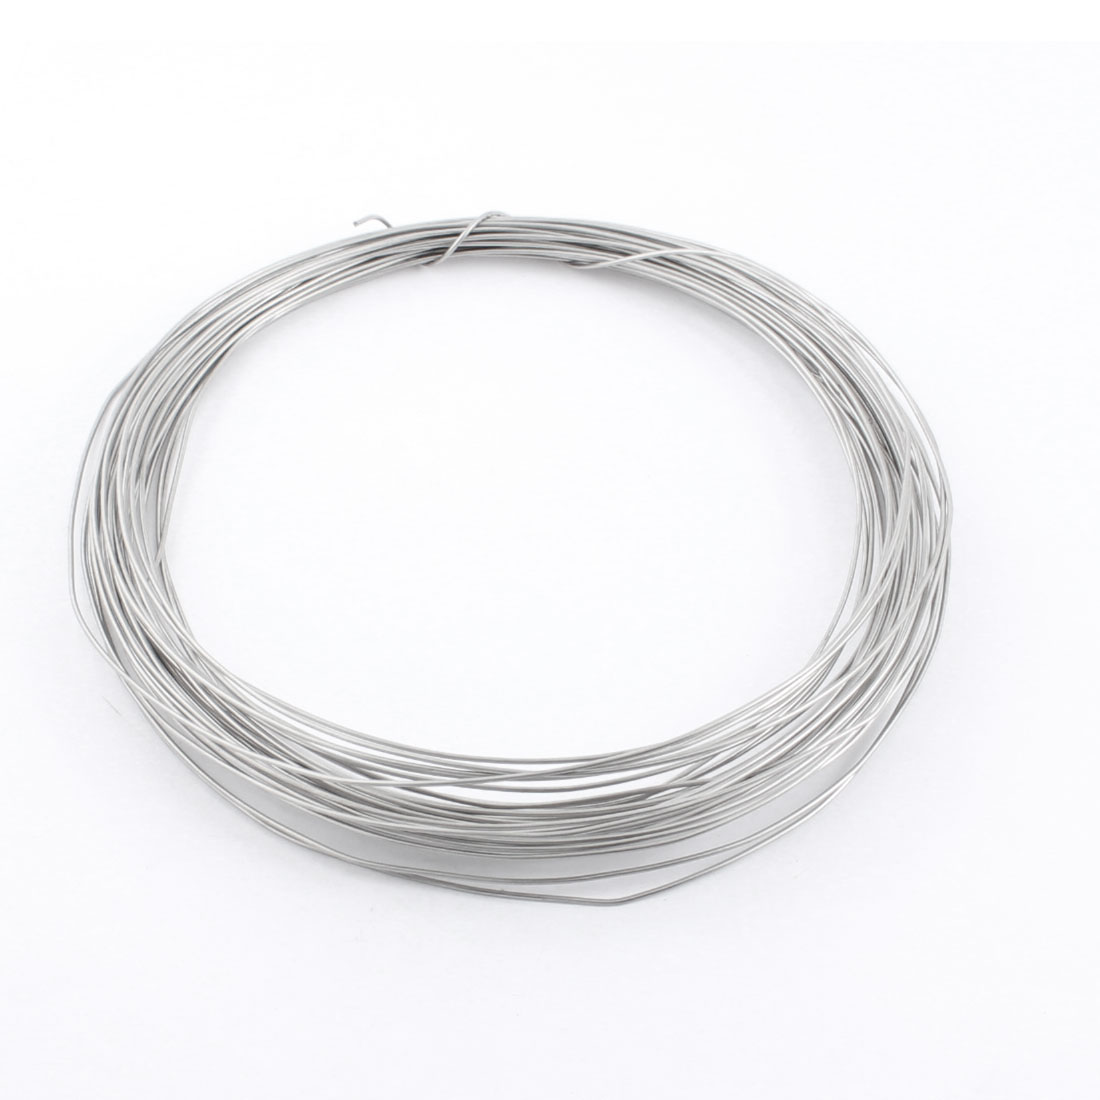 15M 50ft Length 1.2mm Diameter AWG17 Gauge Nichrome Resistance Heating Coils Resistor Wire Cable